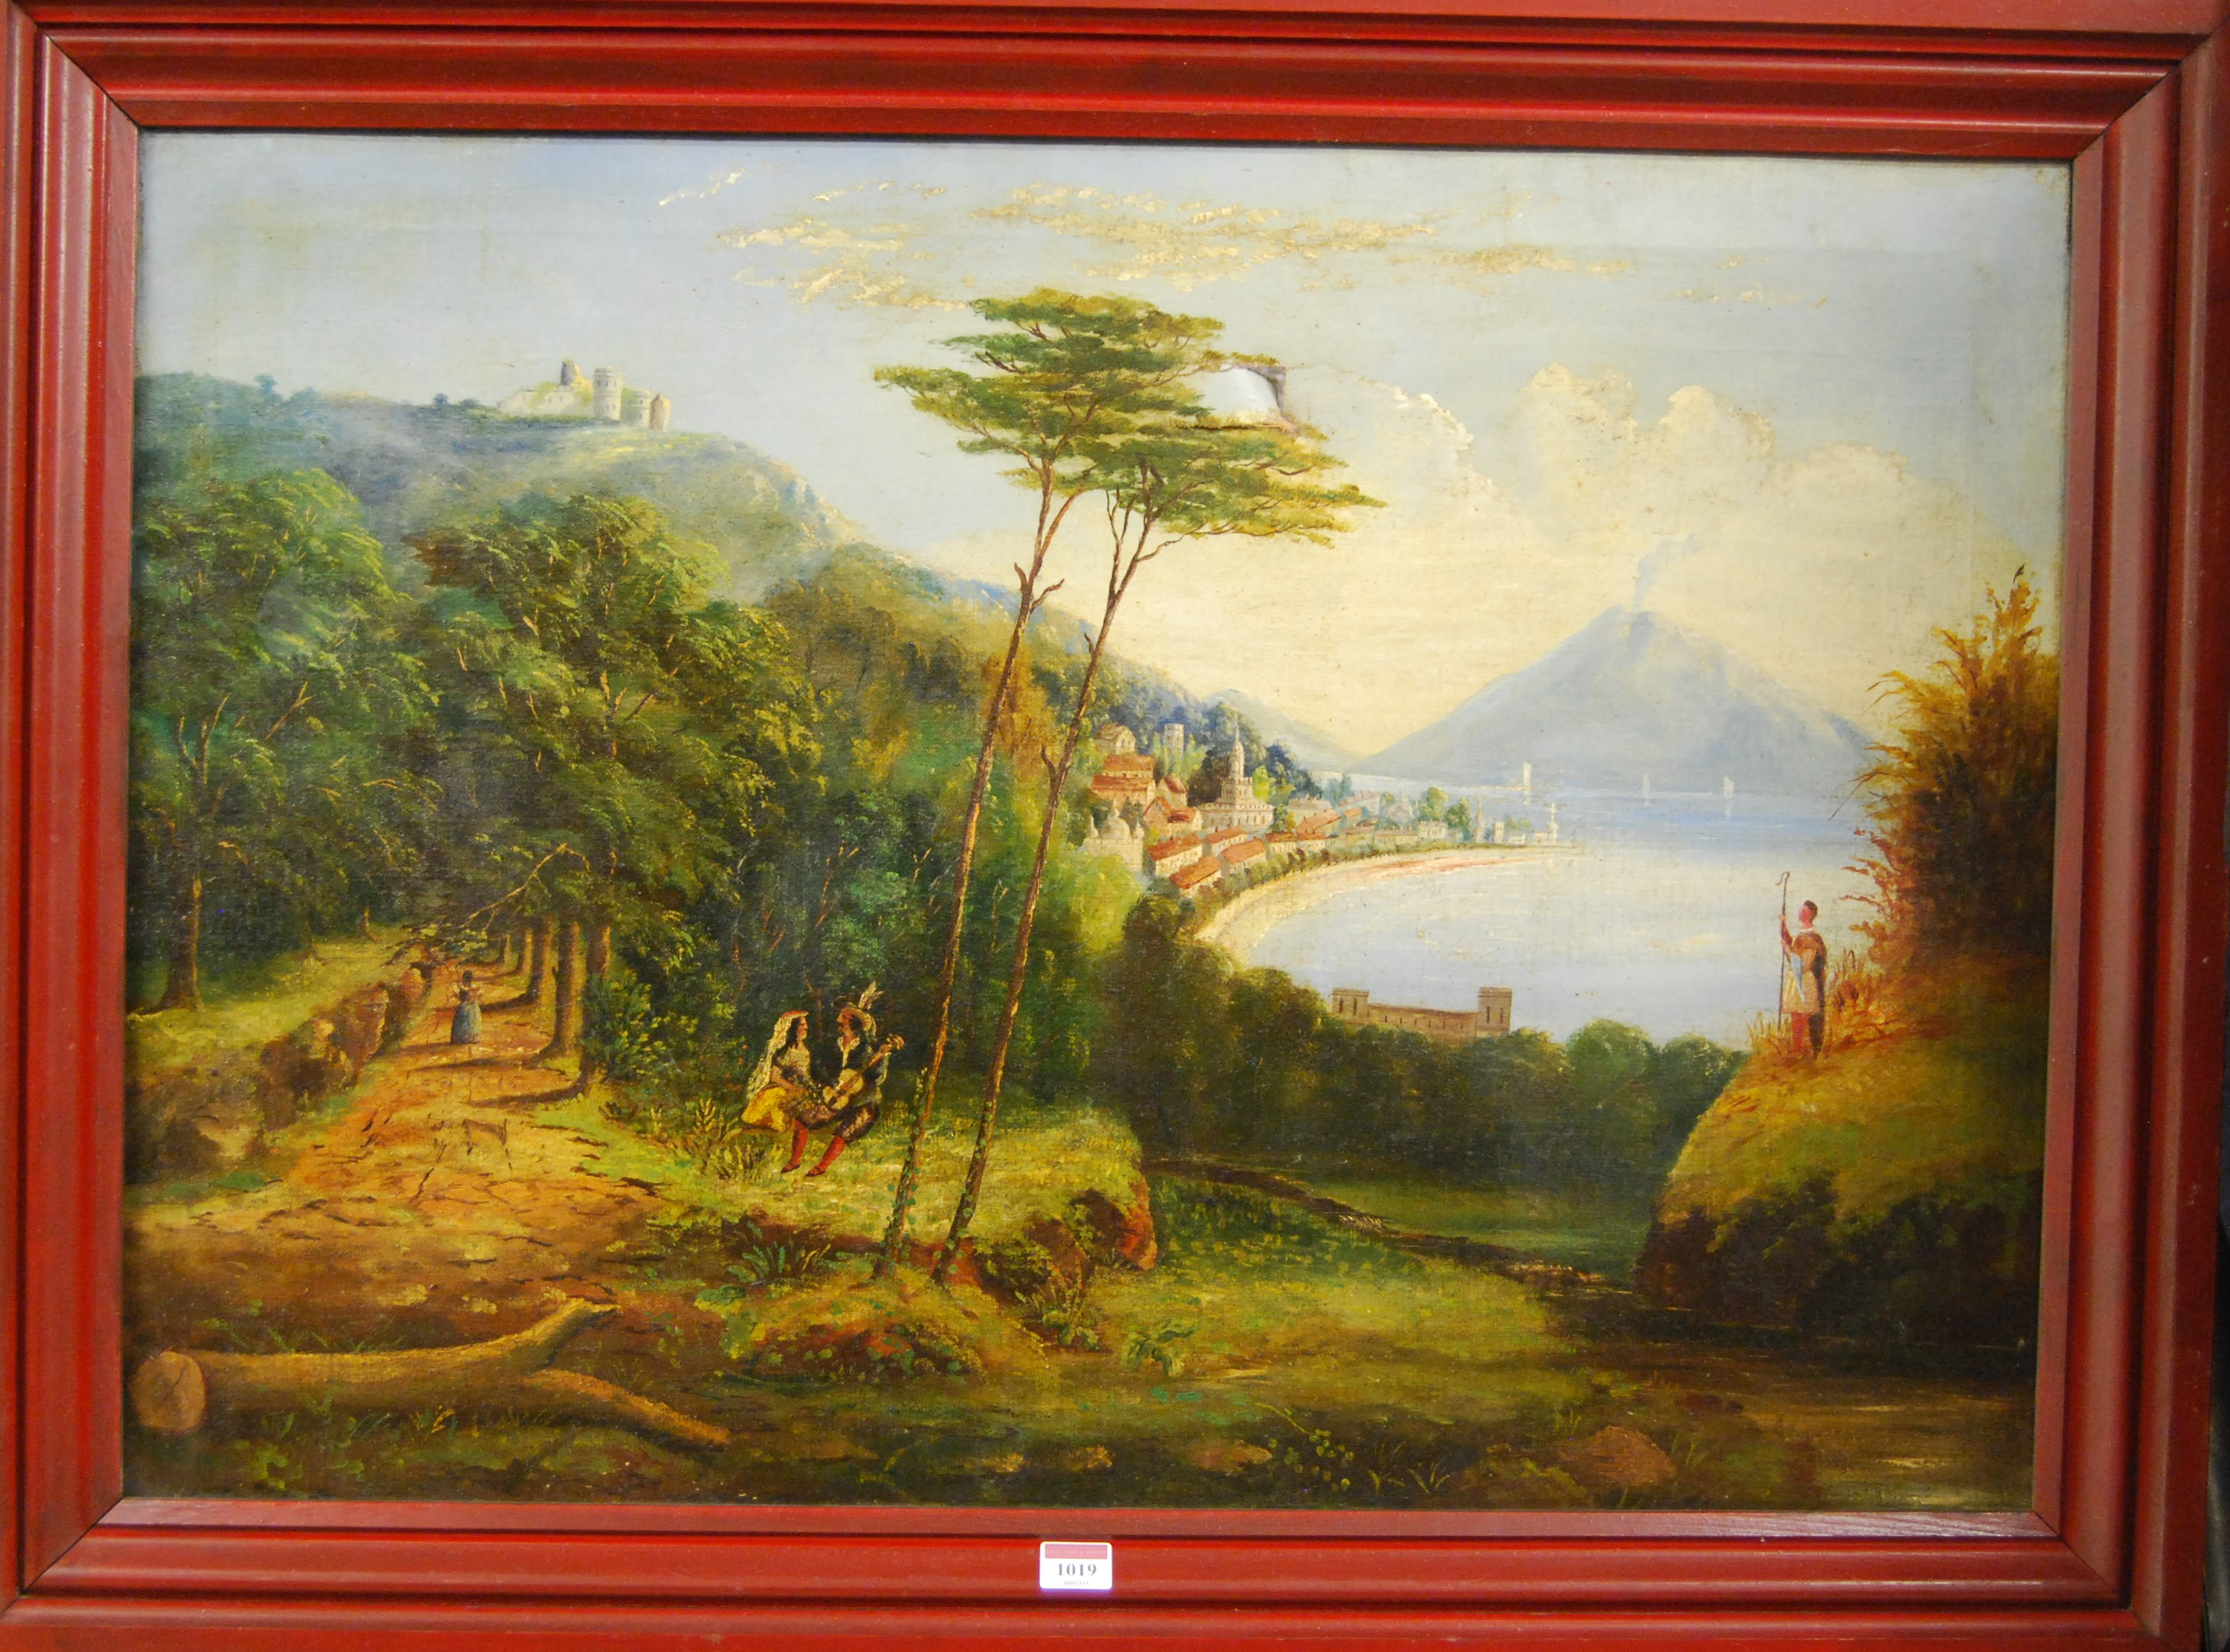 Lot 1019 - Circa 1900 continental school - Extensive coastal landscape scene with musicians, oil on canvas (a/